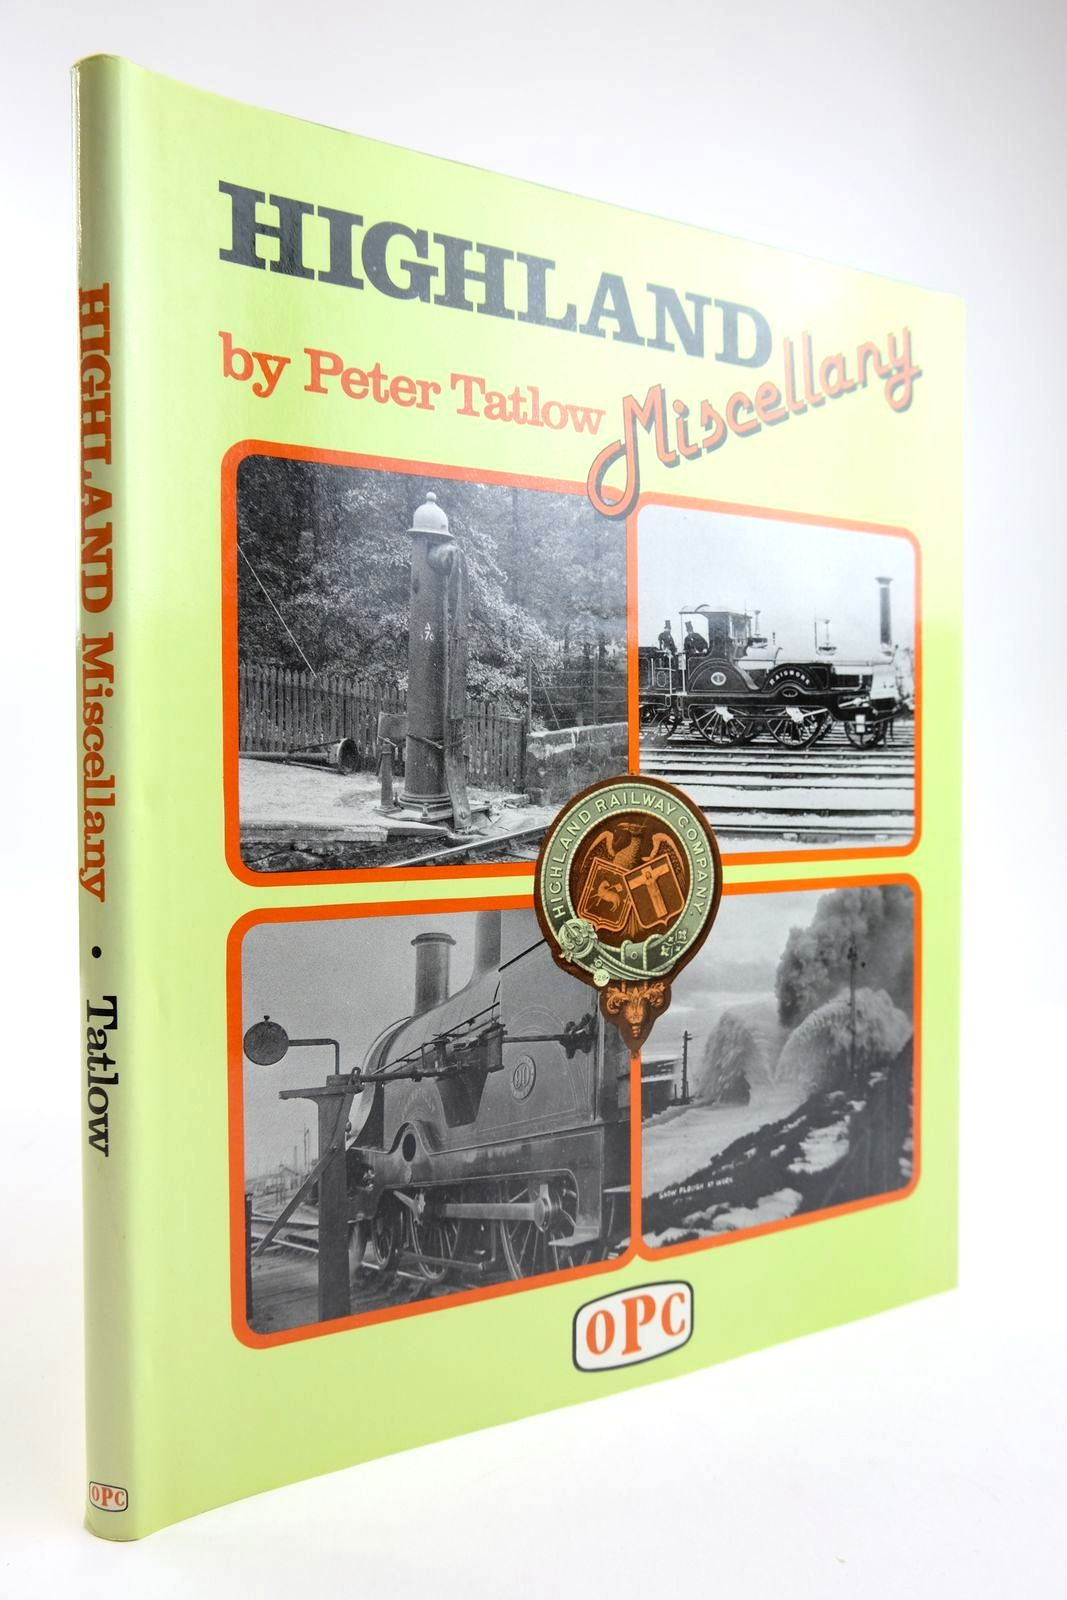 Photo of HIGHLAND RAILWAY MISCELLANY- Stock Number: 2133835